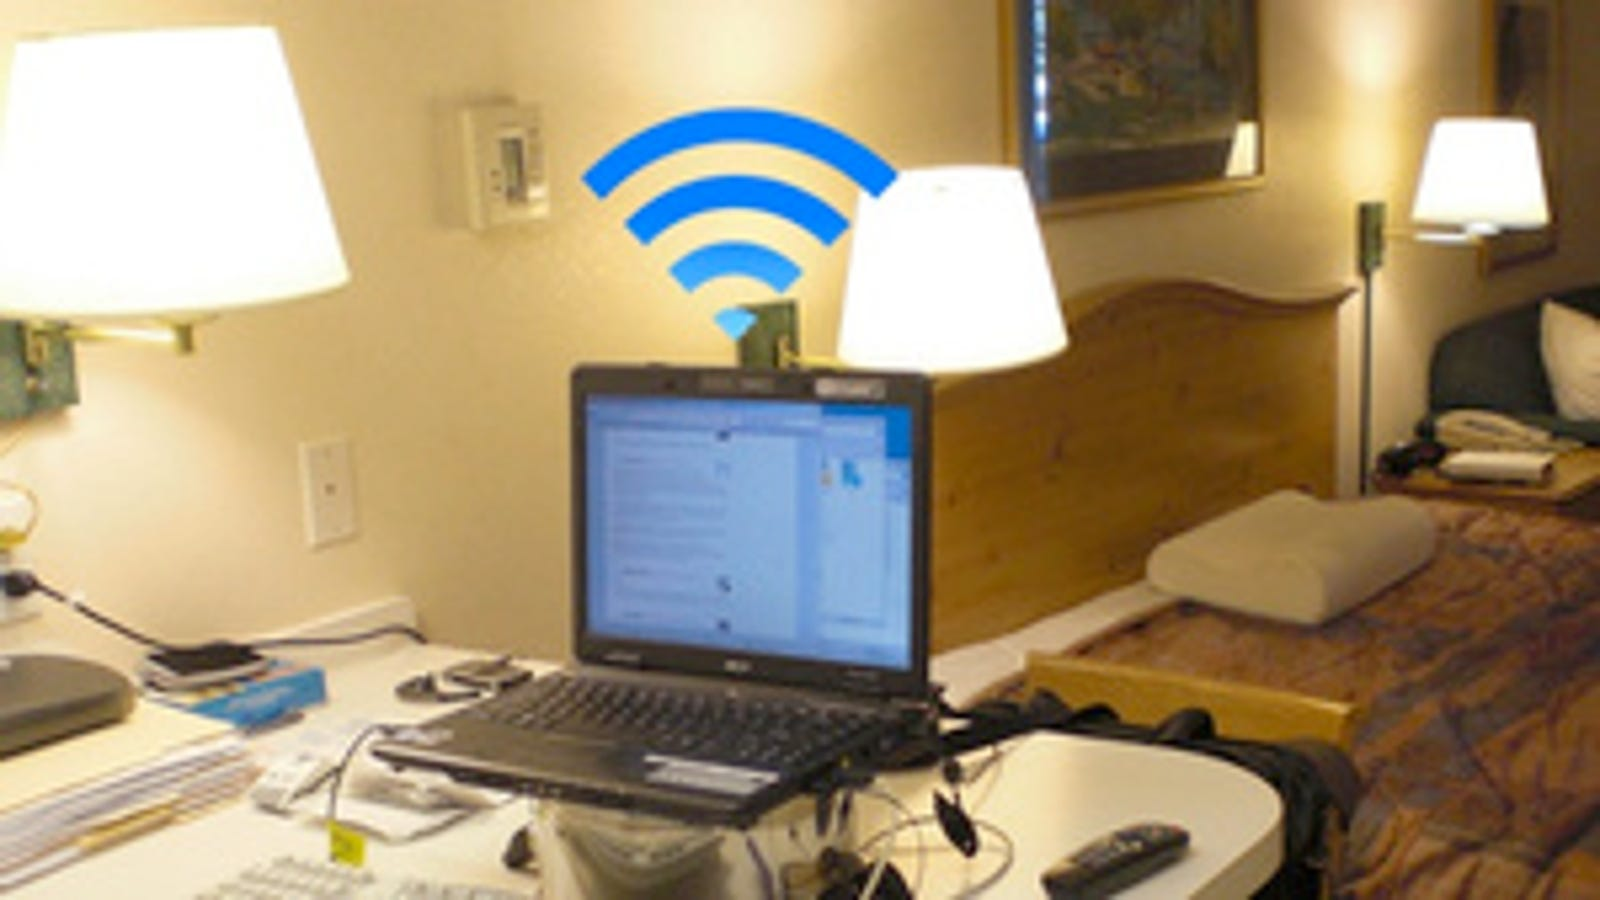 How To Use Your Phone As A Hotspot >> Turn Any Laptop Into a Money-Saving Wi-Fi Hotspot For Your ...